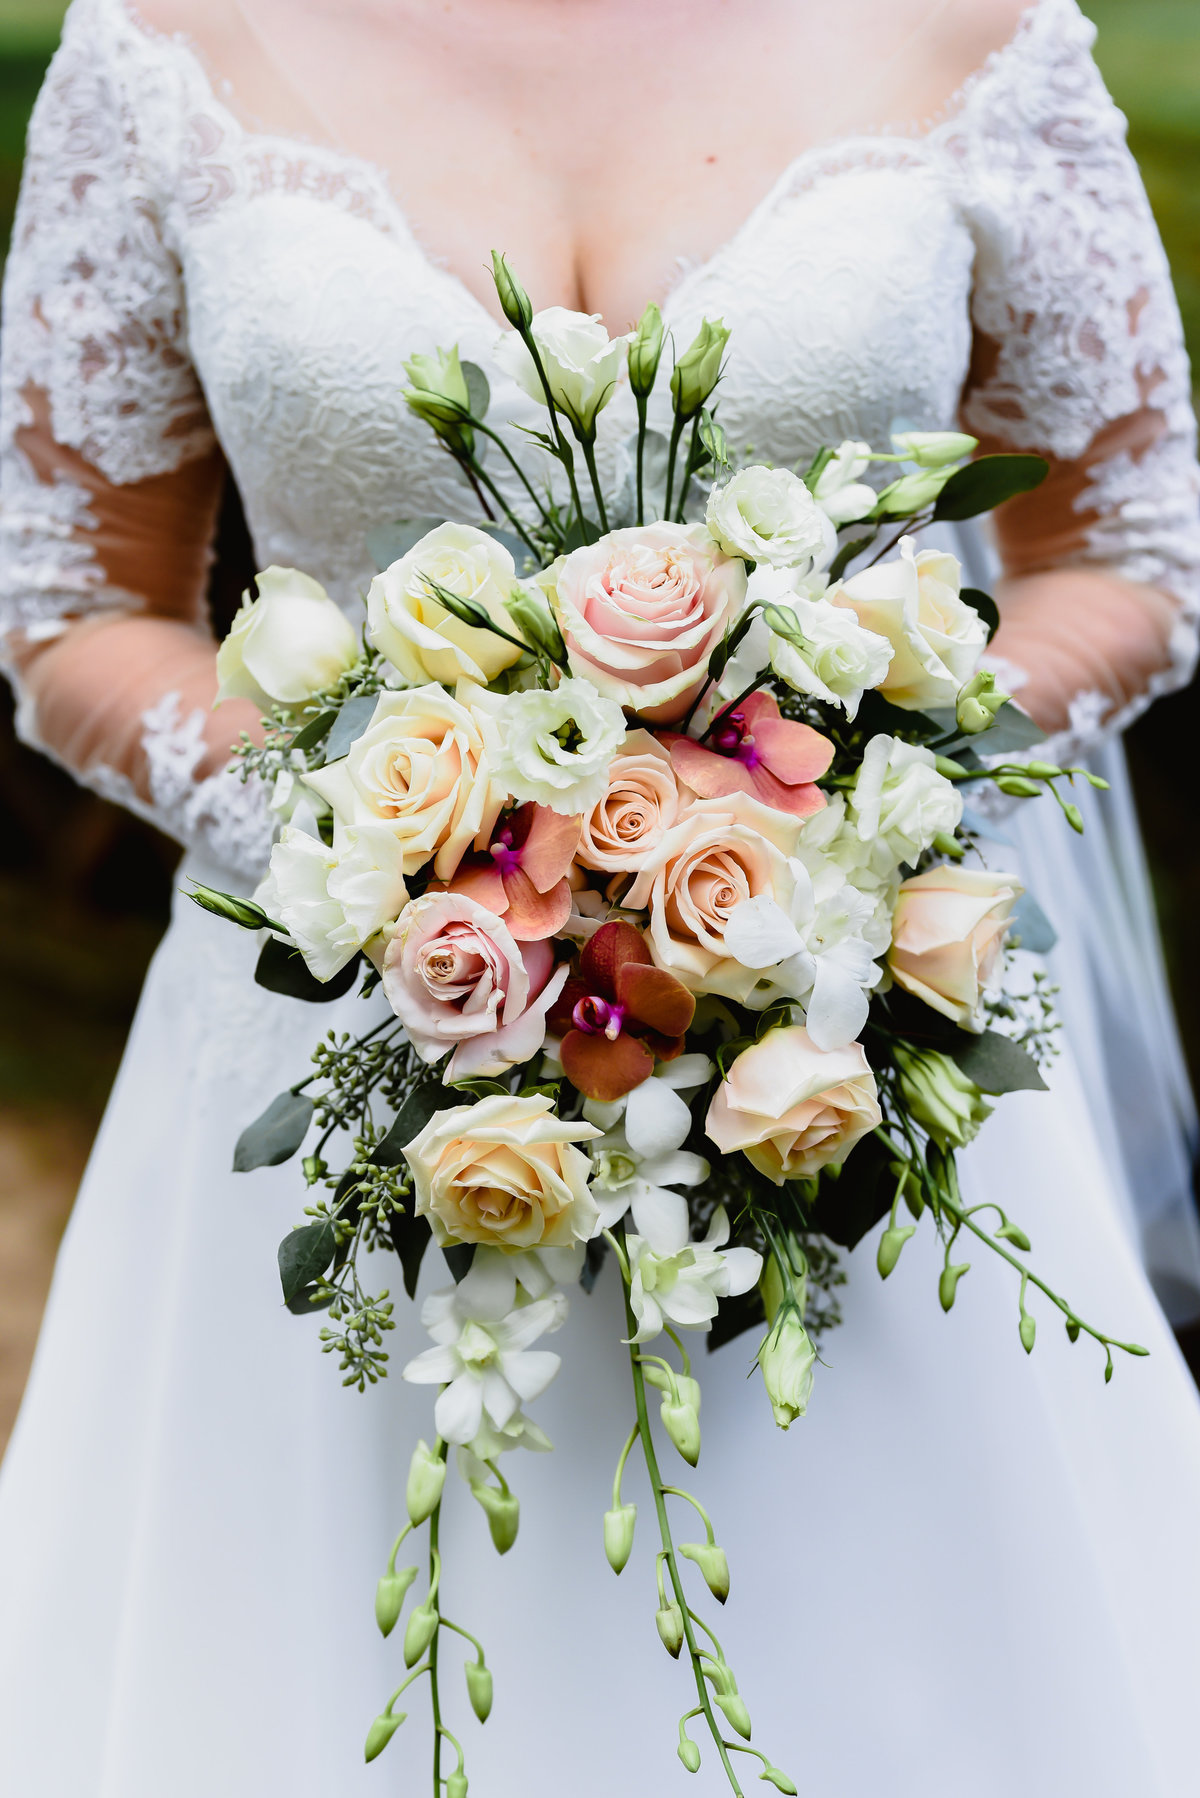 Lovely and colorful wedding bouquet